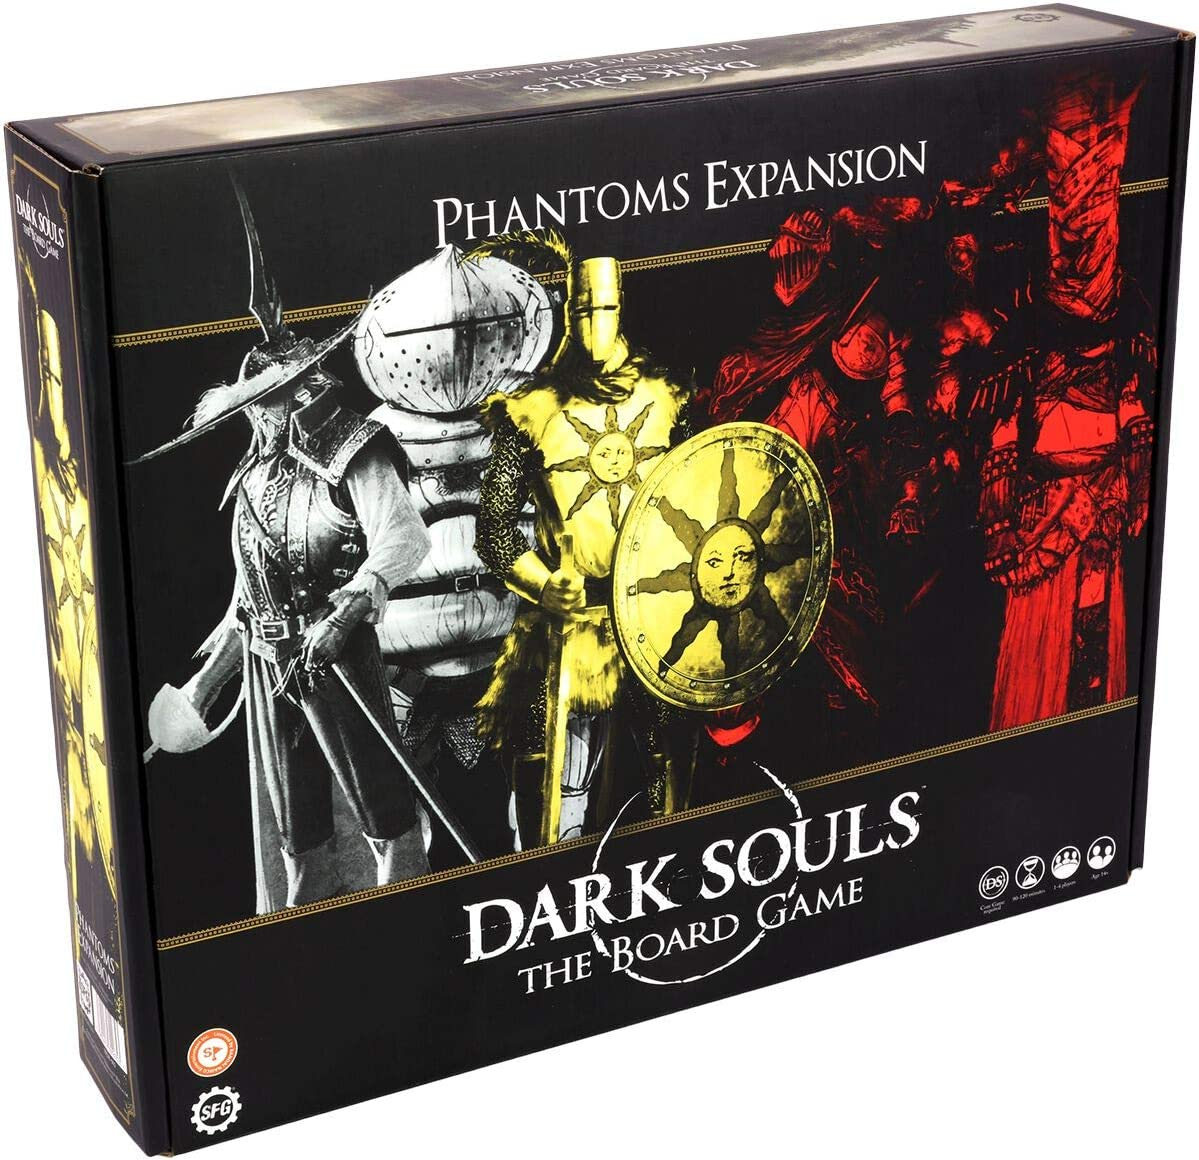 Steamforged Dark Souls: The Board Game - Phantoms Expansion - English: Amazon.es: Juguetes y juegos